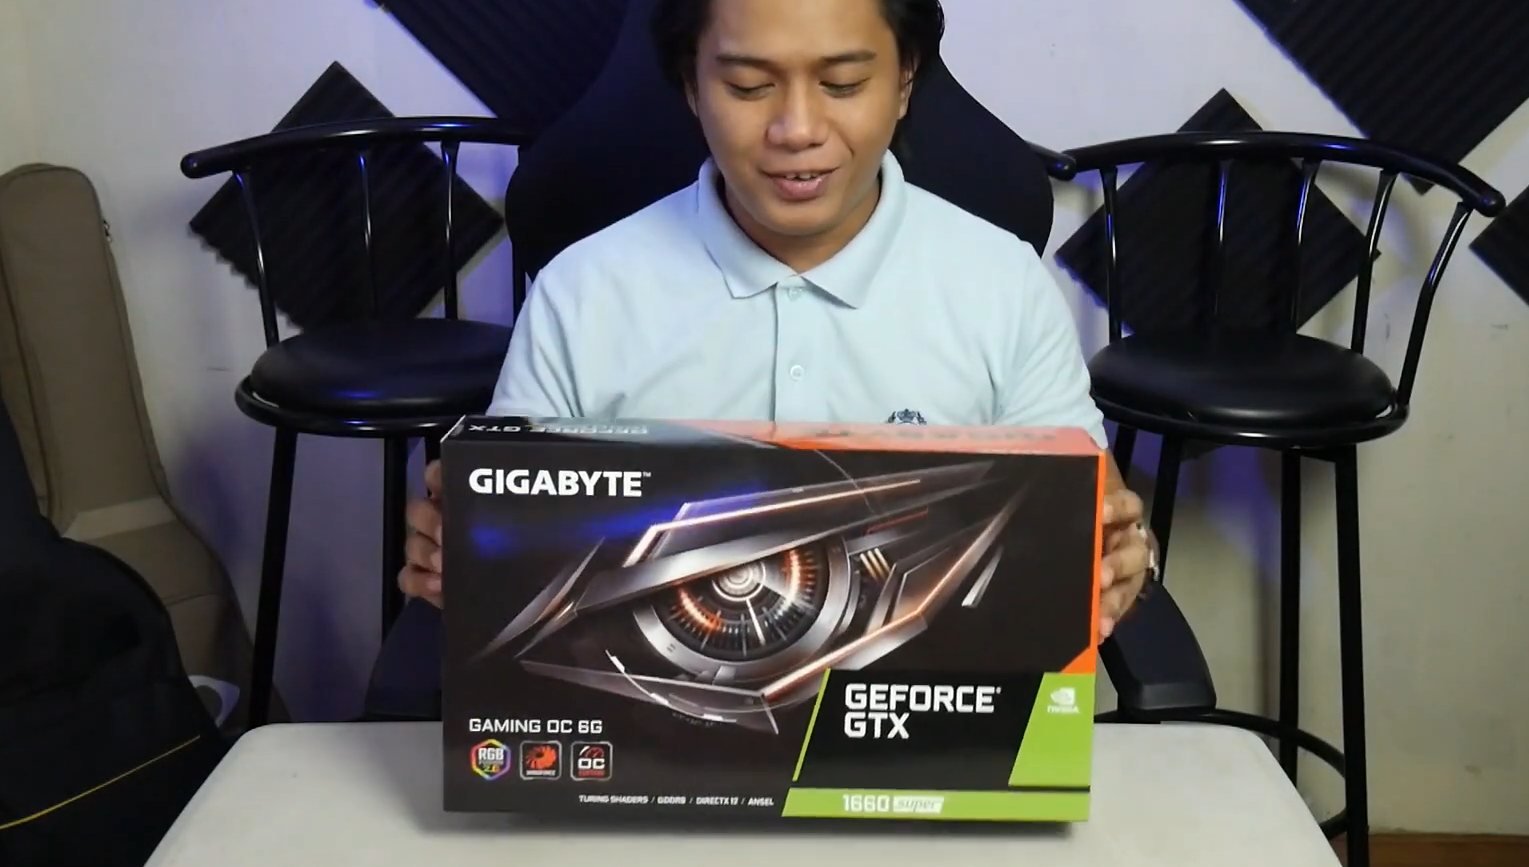 [Member Submission] Unboxing and Benchmark: GIGABYTE GTX 1660 Super